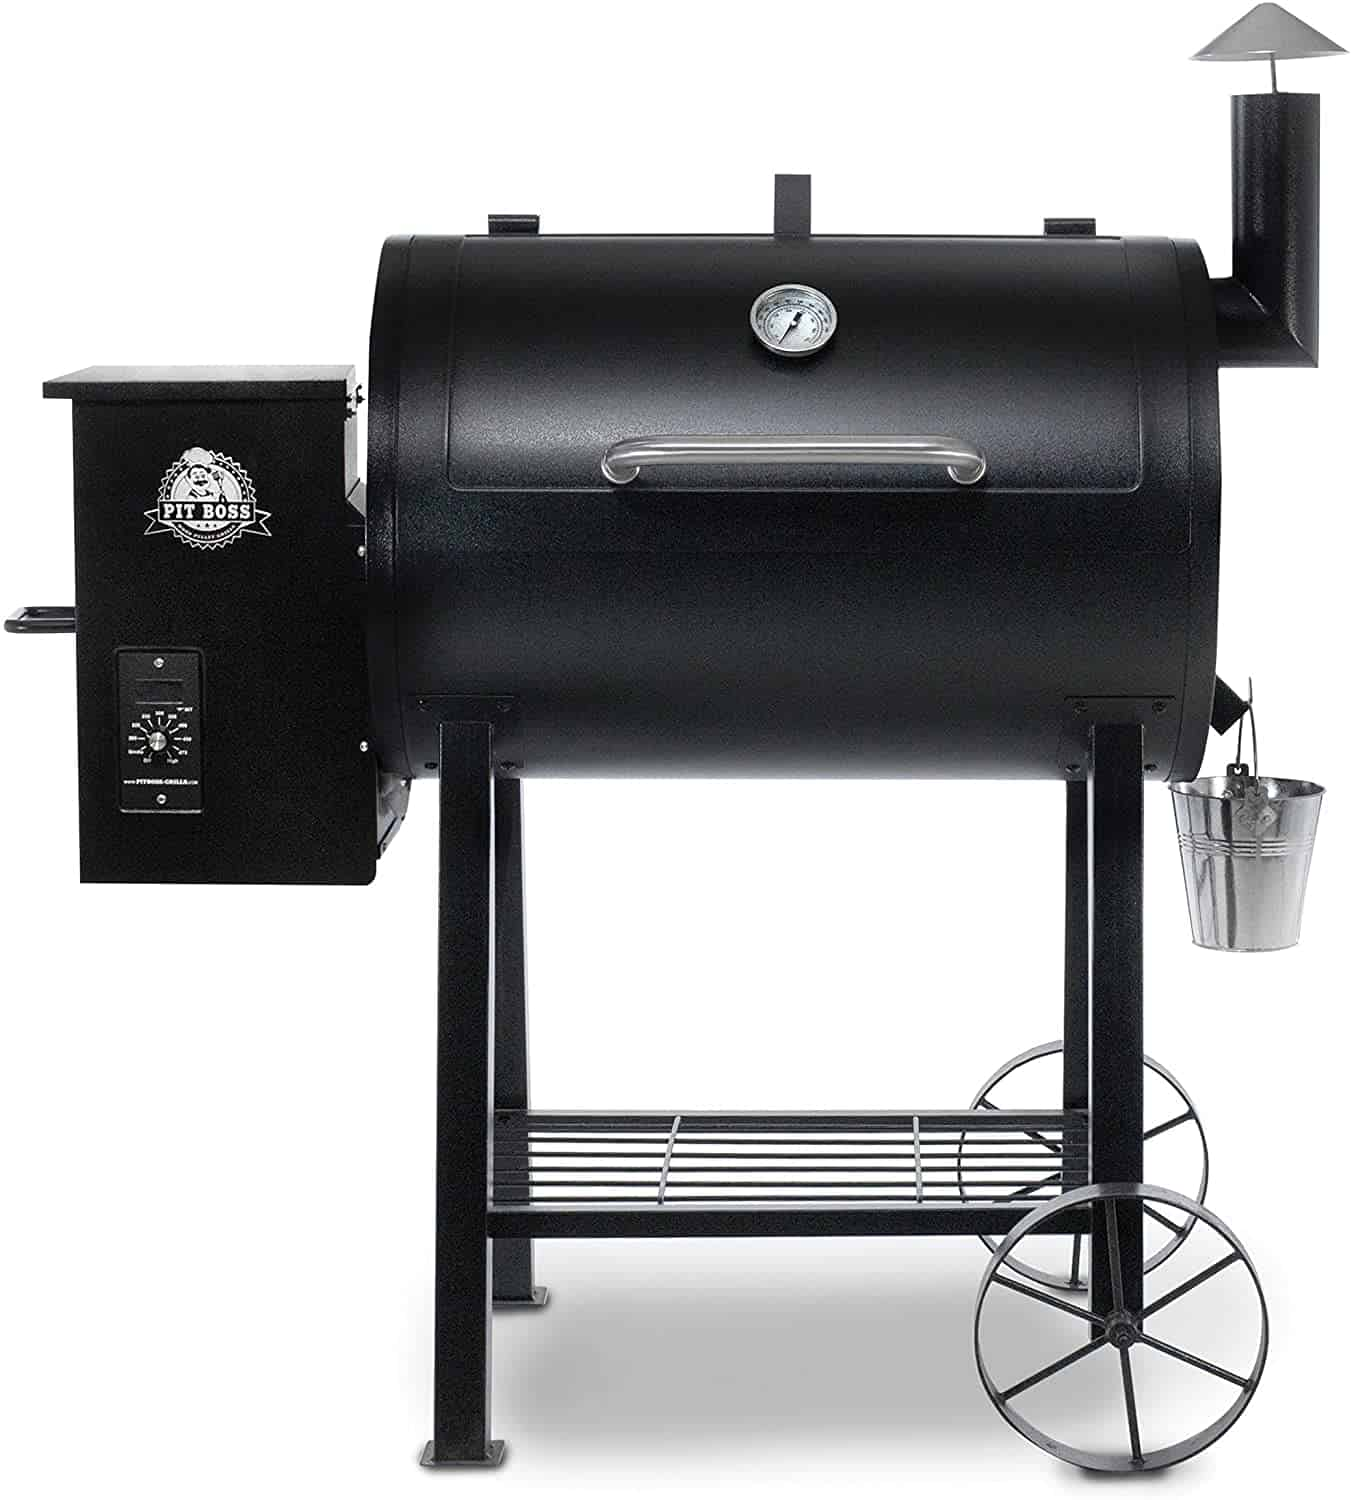 Pit Boss 71820FB Pellet Grill with Flame Broiler